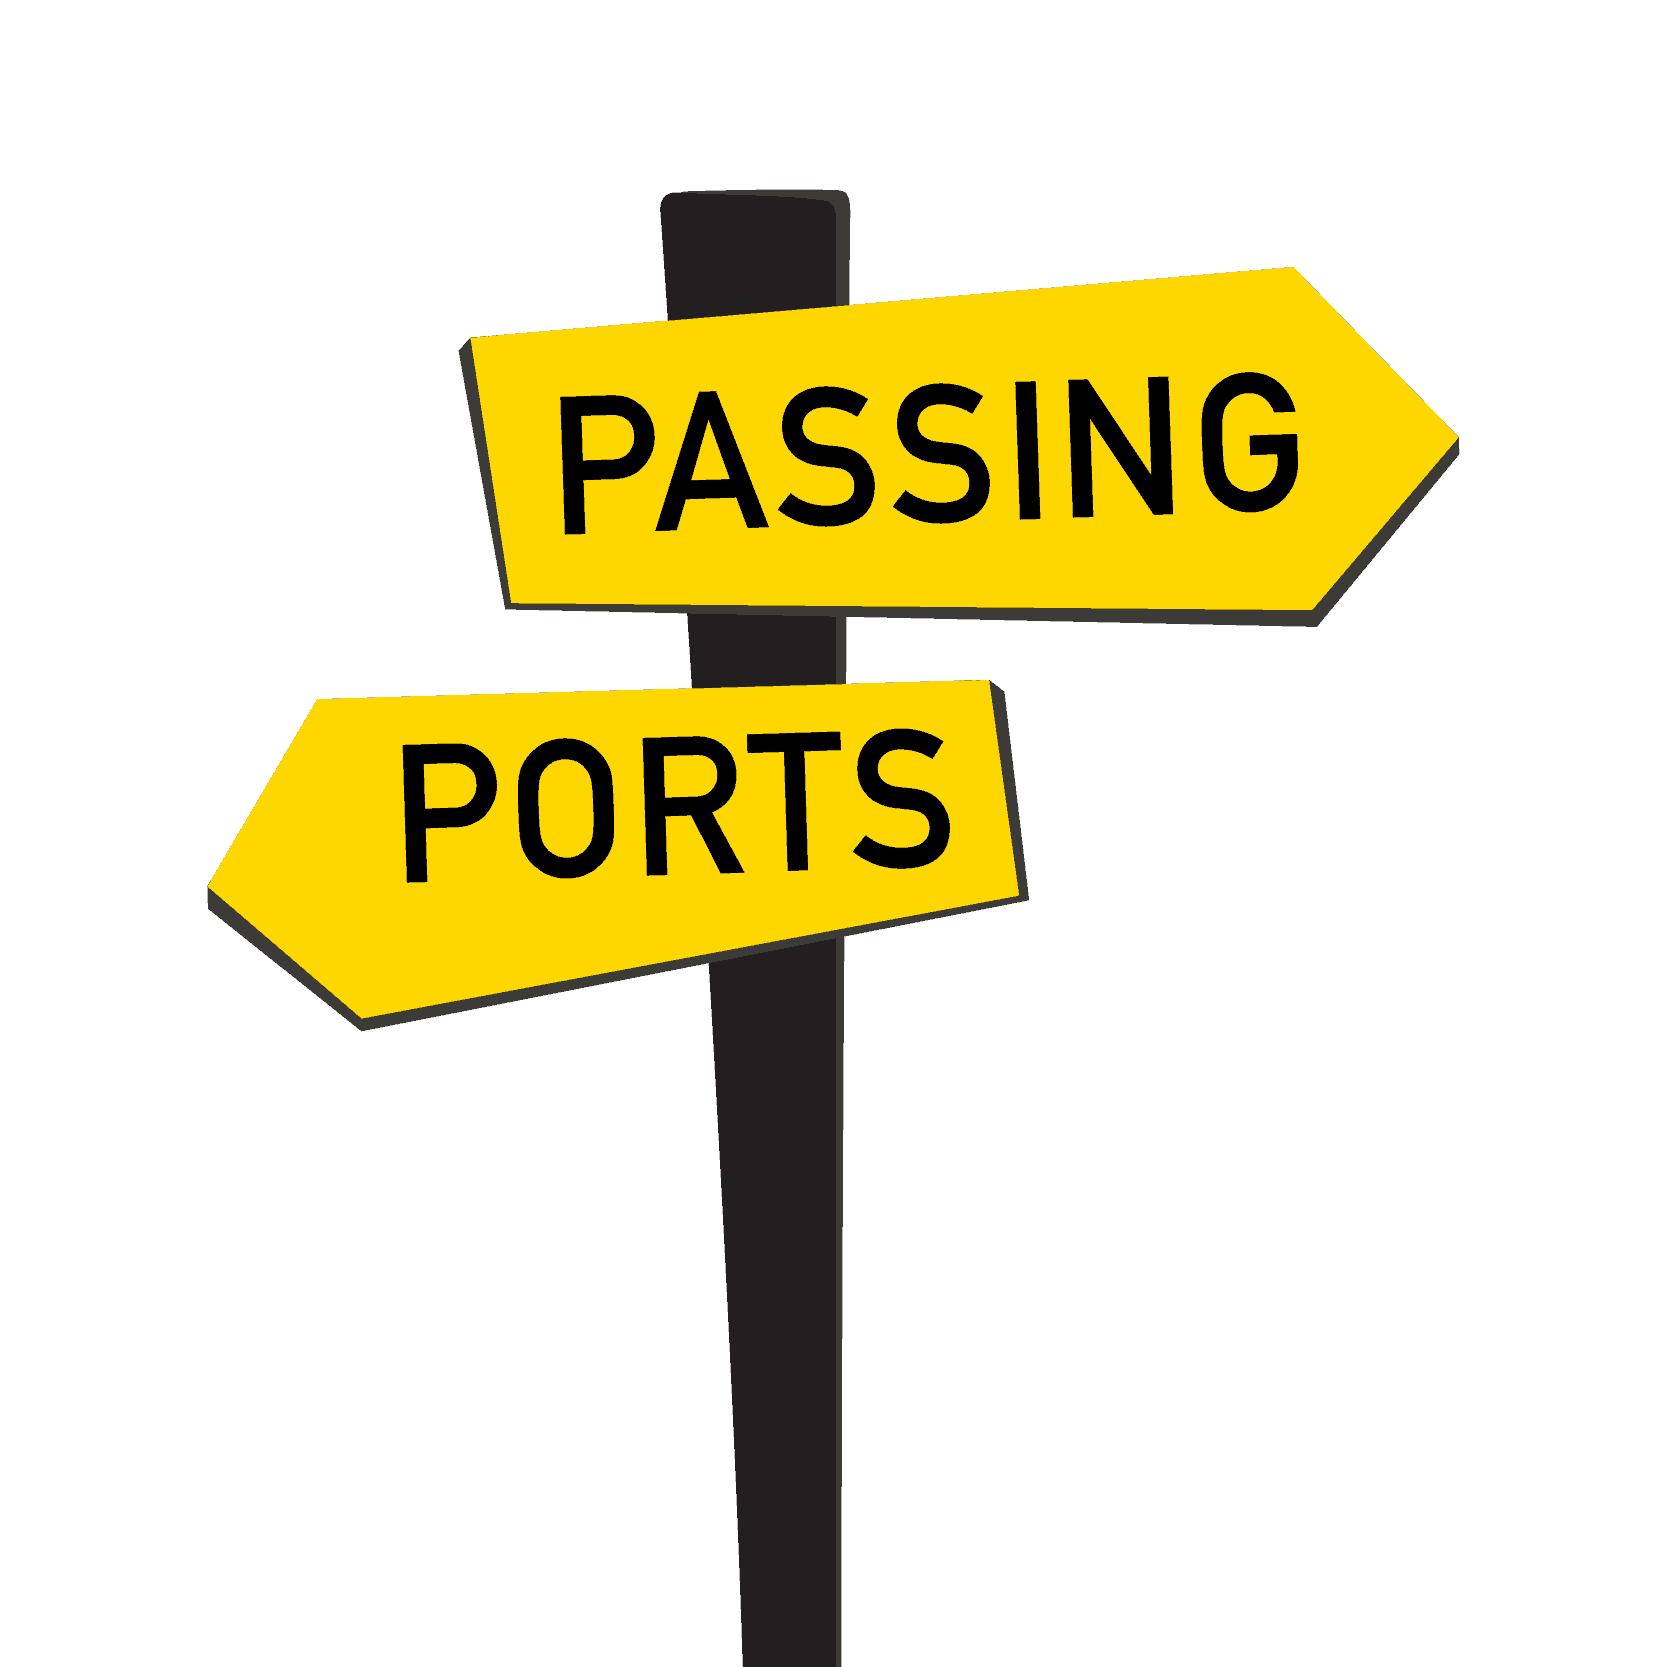 Passing Ports - Couple travel bloggers